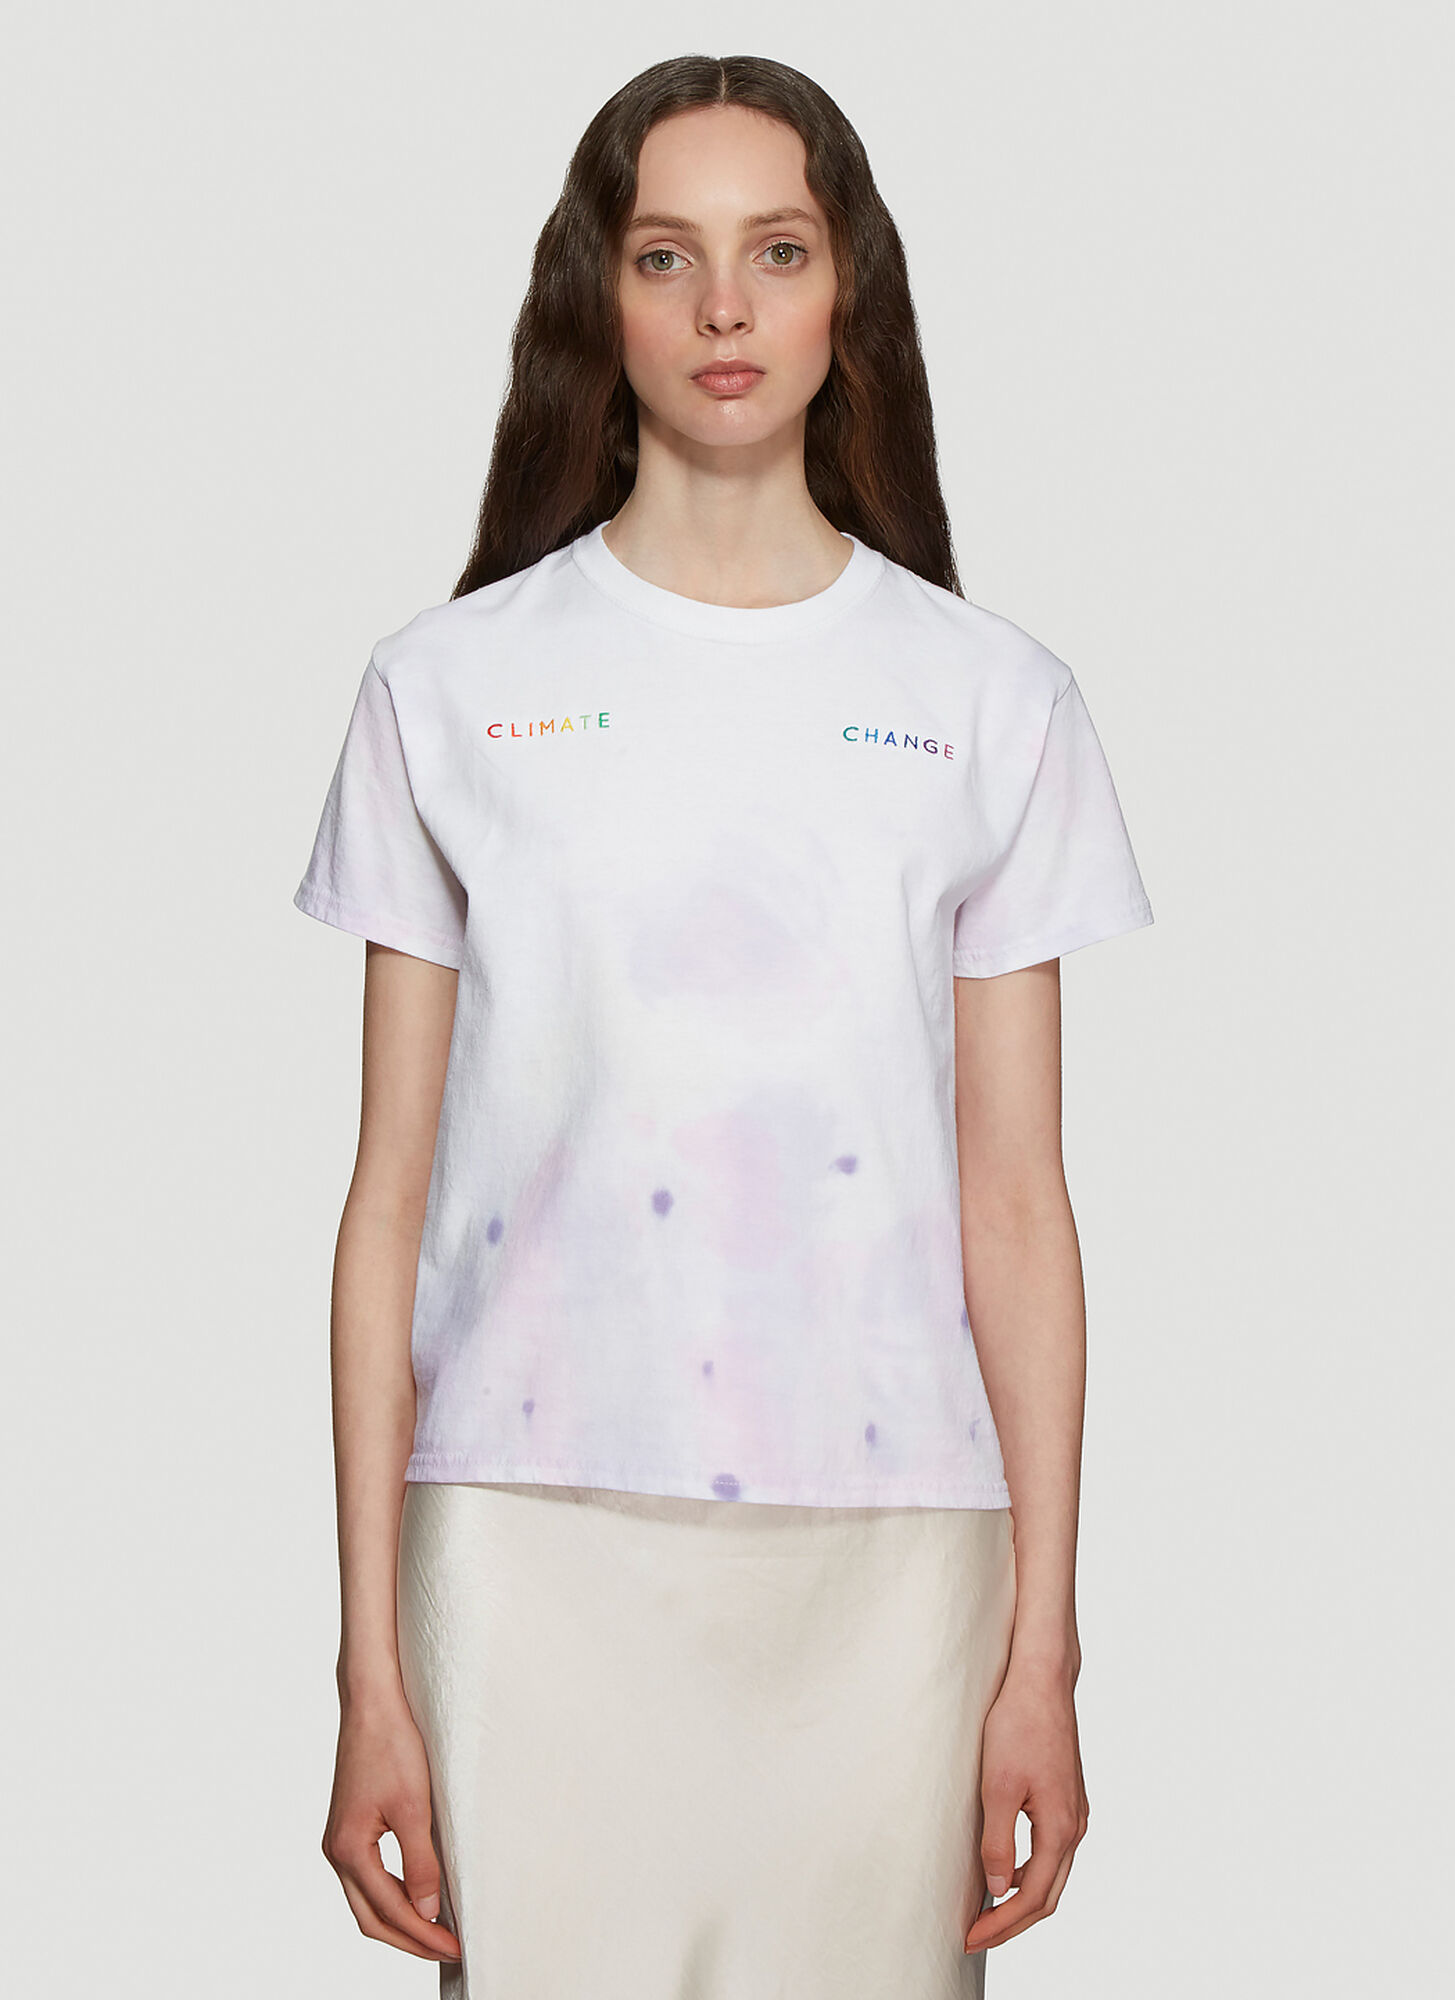 Photo of Collina Strada Climate Change Tie-Dye T-Shirt in White - Collina Strada T-Shirts